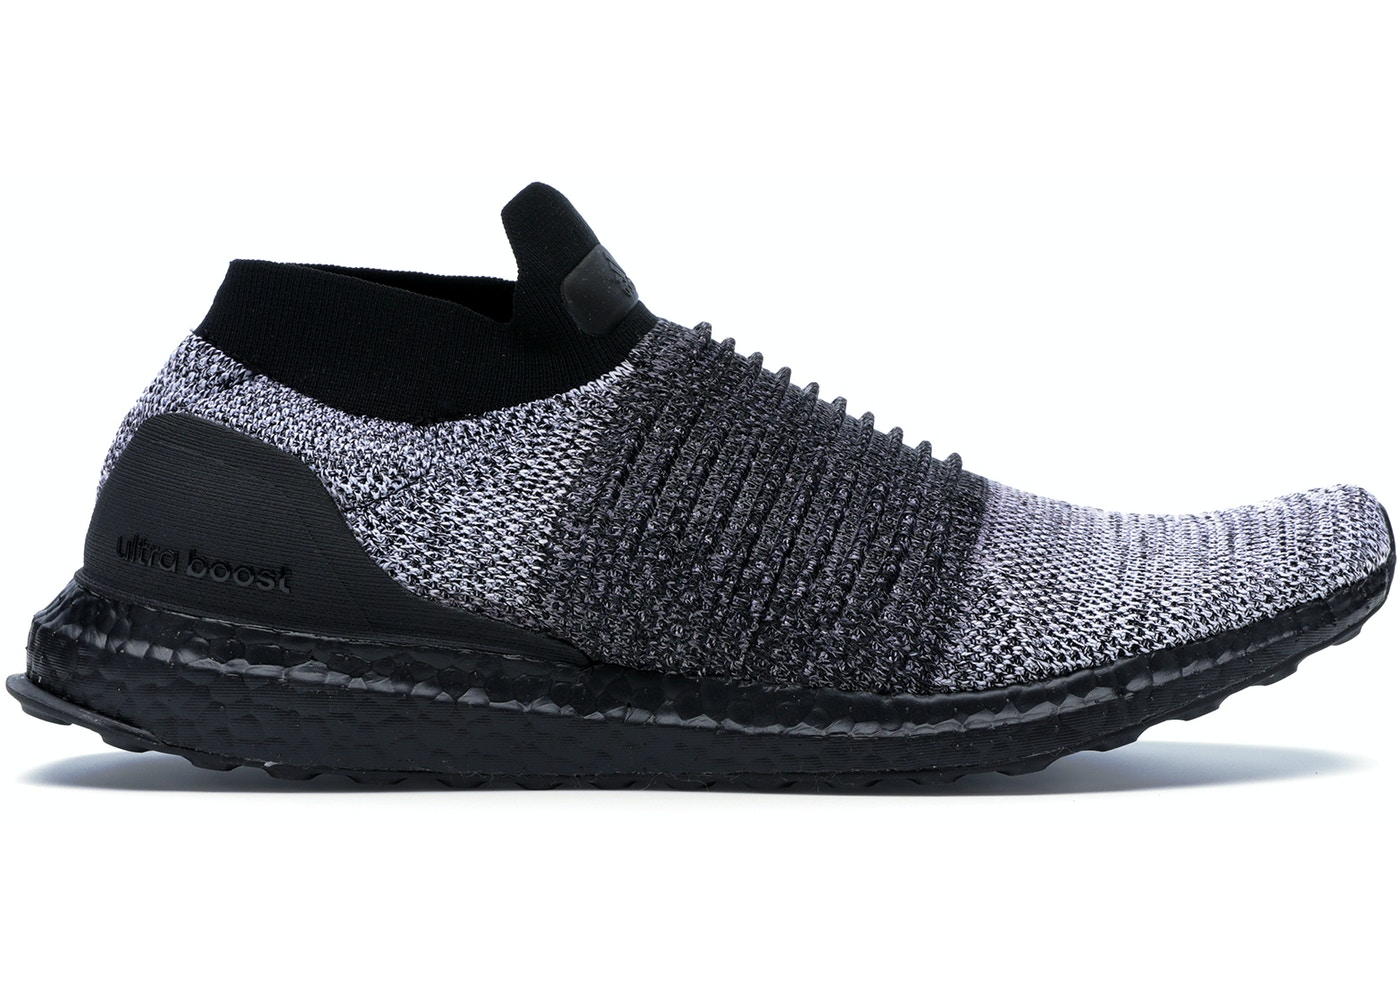 a1870a75aeae adidas Ultra Boost Laceless Mid Black Oreo - BB6137